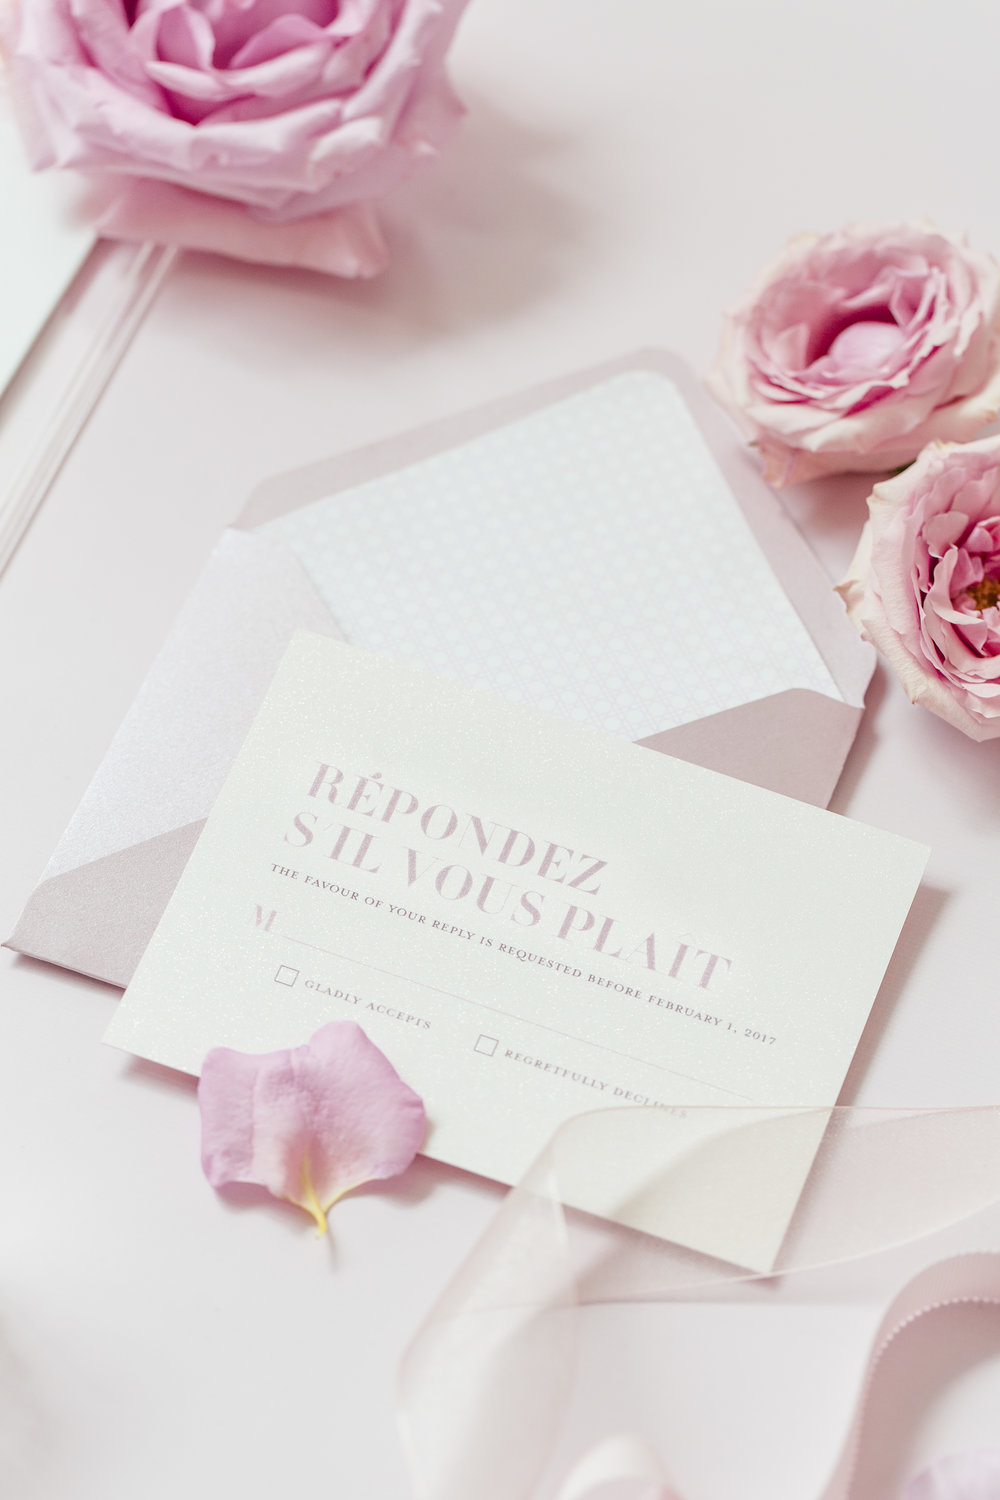 Invitation Suite RSVP - Dior Darling (Wedluxe)